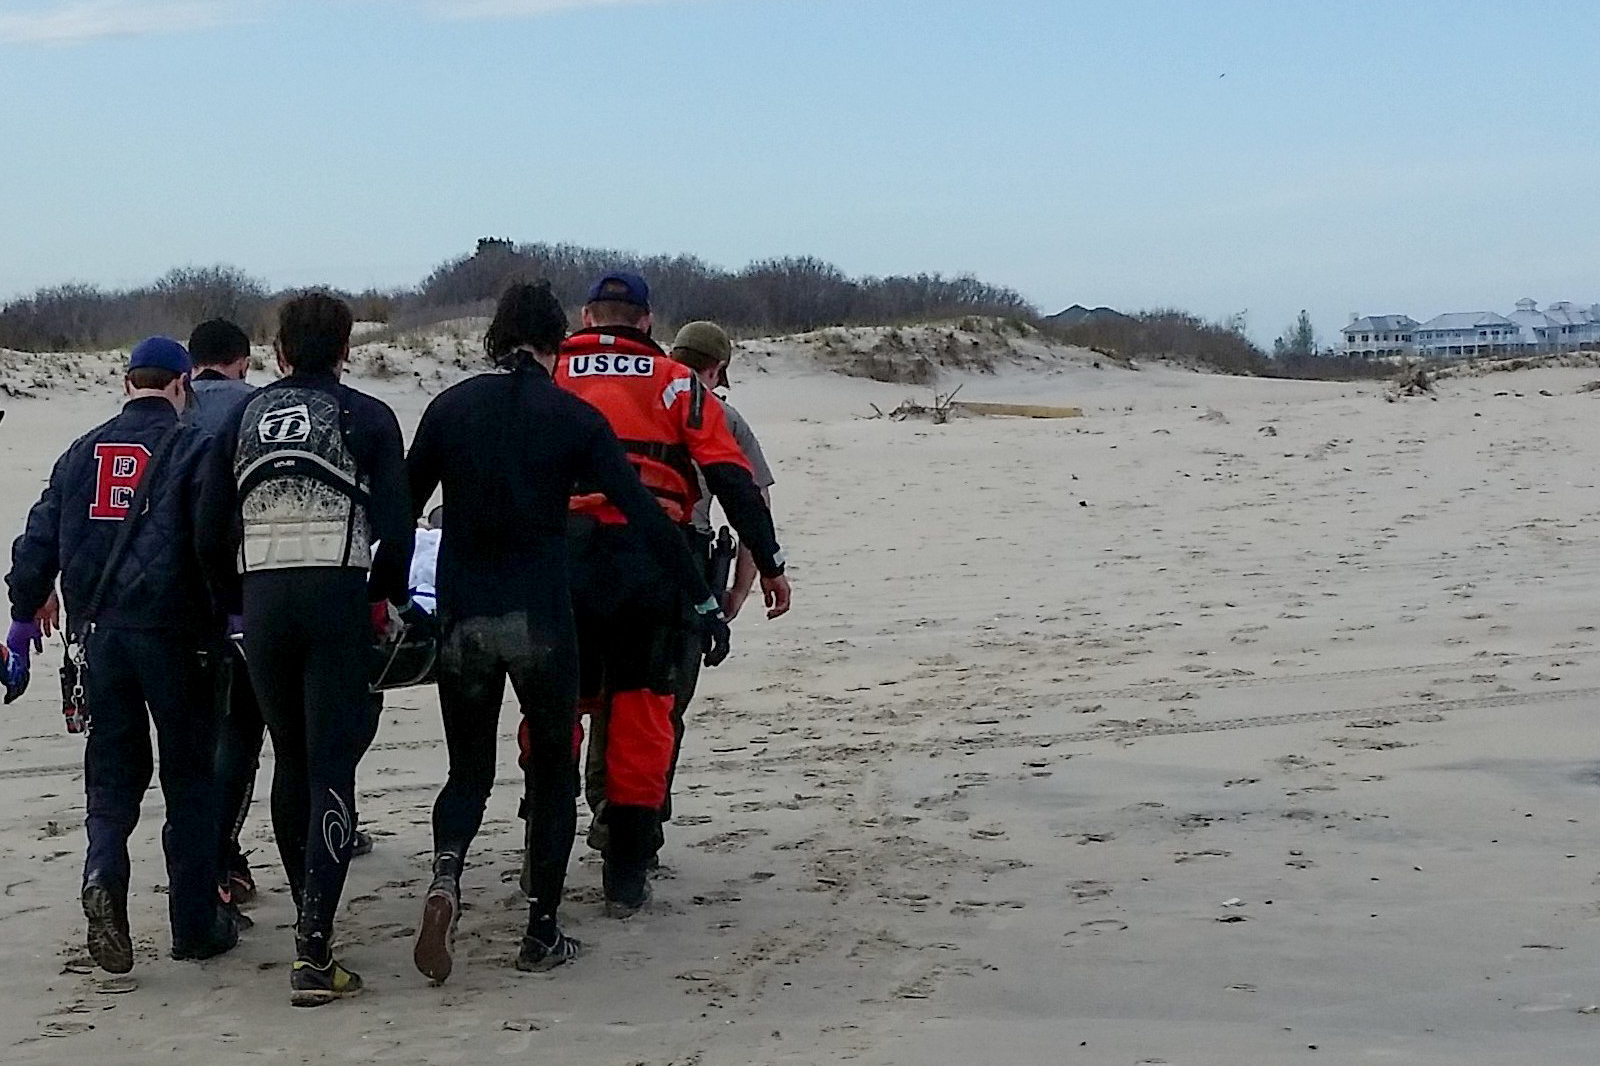 Crewmembers from Coast Guard Station Ocean City, Md., local emergency medical personnel, and friends carry an injured man from the north end of Assateague Island National Seashore to a Coast Guard 24-foot Special Purpose Craft-Shallow Water Saturday, April 30, 2016, for transport to Atlantic General Hospital. The SPC-SW crew was on patrol when friends of the injured man stopped the crew to state their friend had suffered a broken leg, was stranded, and in need of assistance. U.S. Coast Guard photo by Petty Officer 2nd Class Kyle Wood